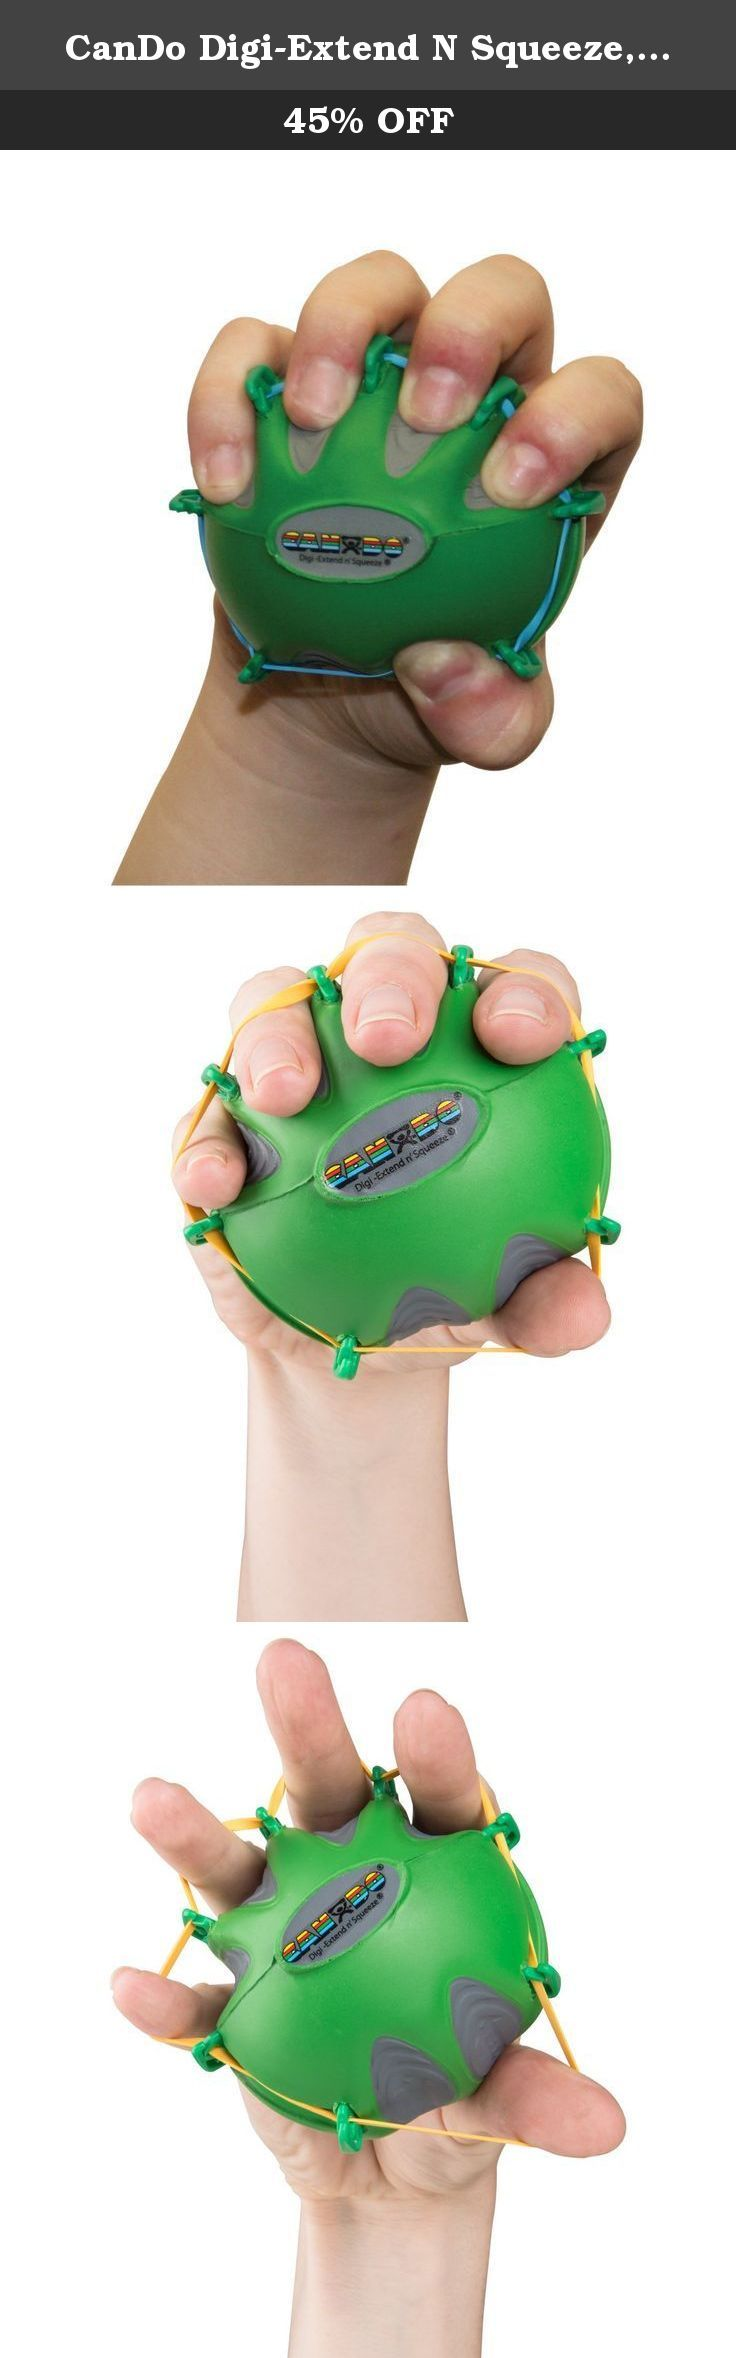 CanDo Digi-Extend N Squeeze, Medium Green. CanDo Digi-Extend n' Squeeze Hand Exerciser combines best features of Digi-Extend and Digi-Squeeze. It helps to develop isolated finger strength, flexibility and coordination. Provides complete reciprocal exercise program (flexion and extension). Ergonomic ball-shape positions fingers and hand for ideal pressure distribution. Each exercise comes with exercise pamphlet. CanDo Digi-Extend n' Squeeze available in 3 sizes. Each size available in 5...